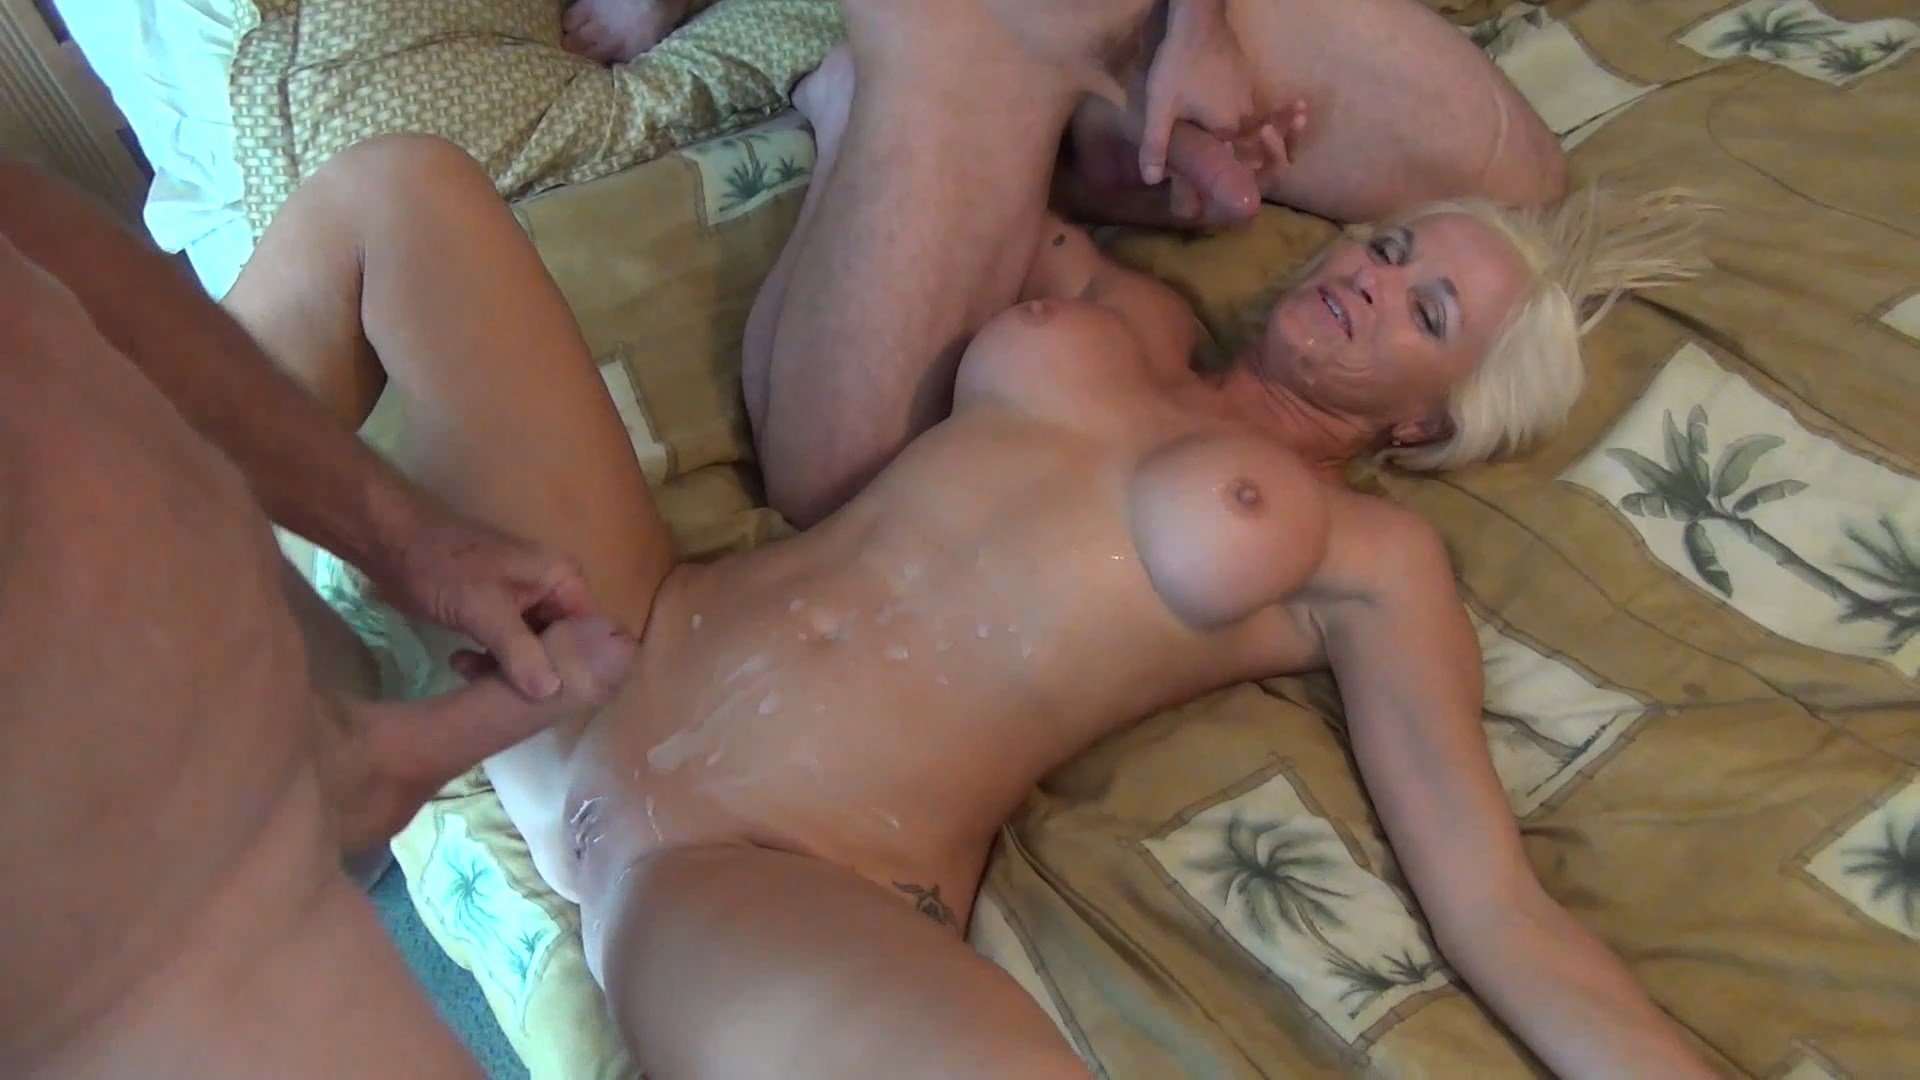 TABOO - MOTHER'S DAY ORGY!! - Dani Dare